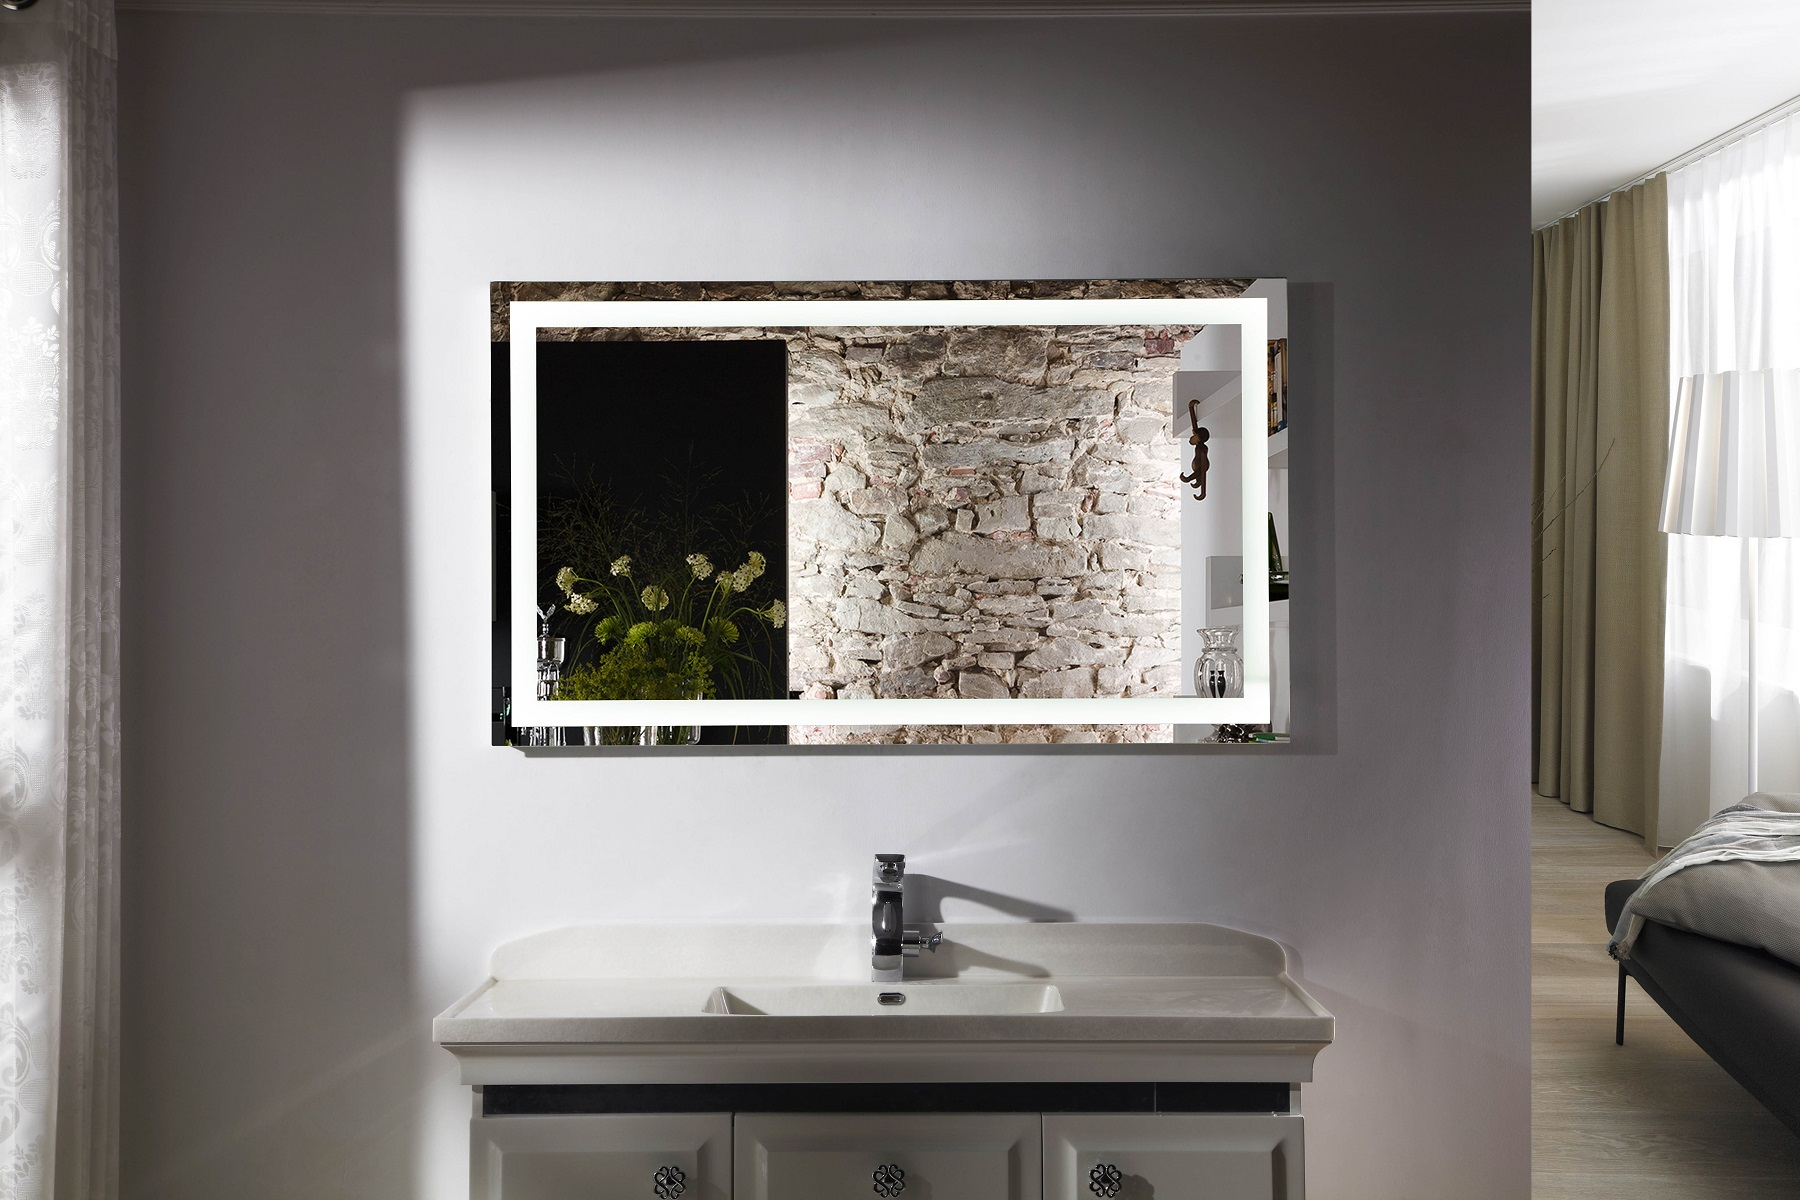 Bathroom Mirror Led lighted bathroom mirror.backlit led light bathroom vanity sink